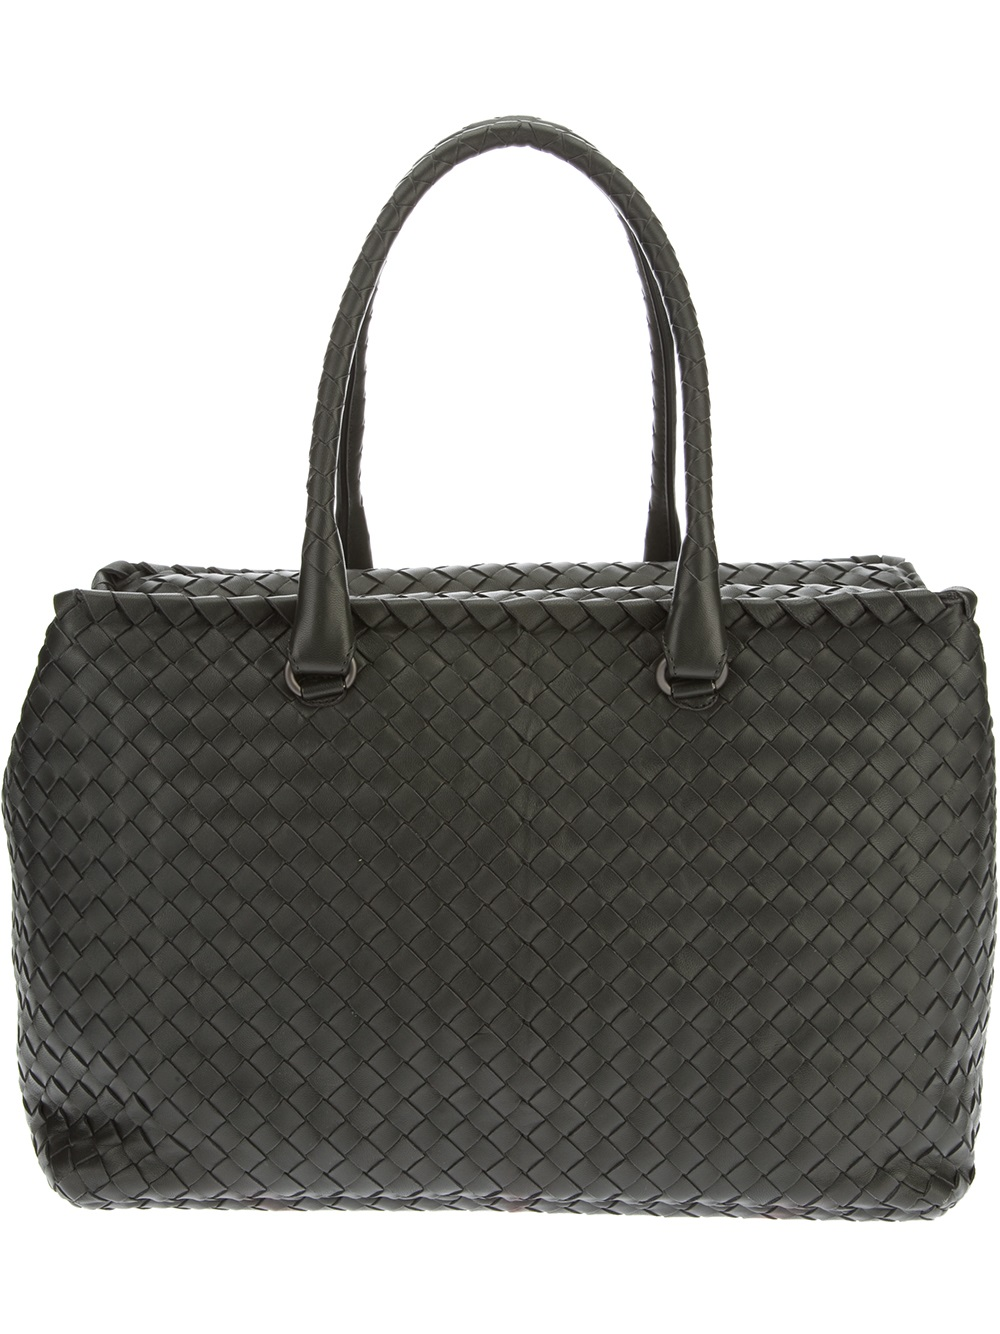 Bottega veneta Medium Sized Shoulder Bag in Black | Lyst